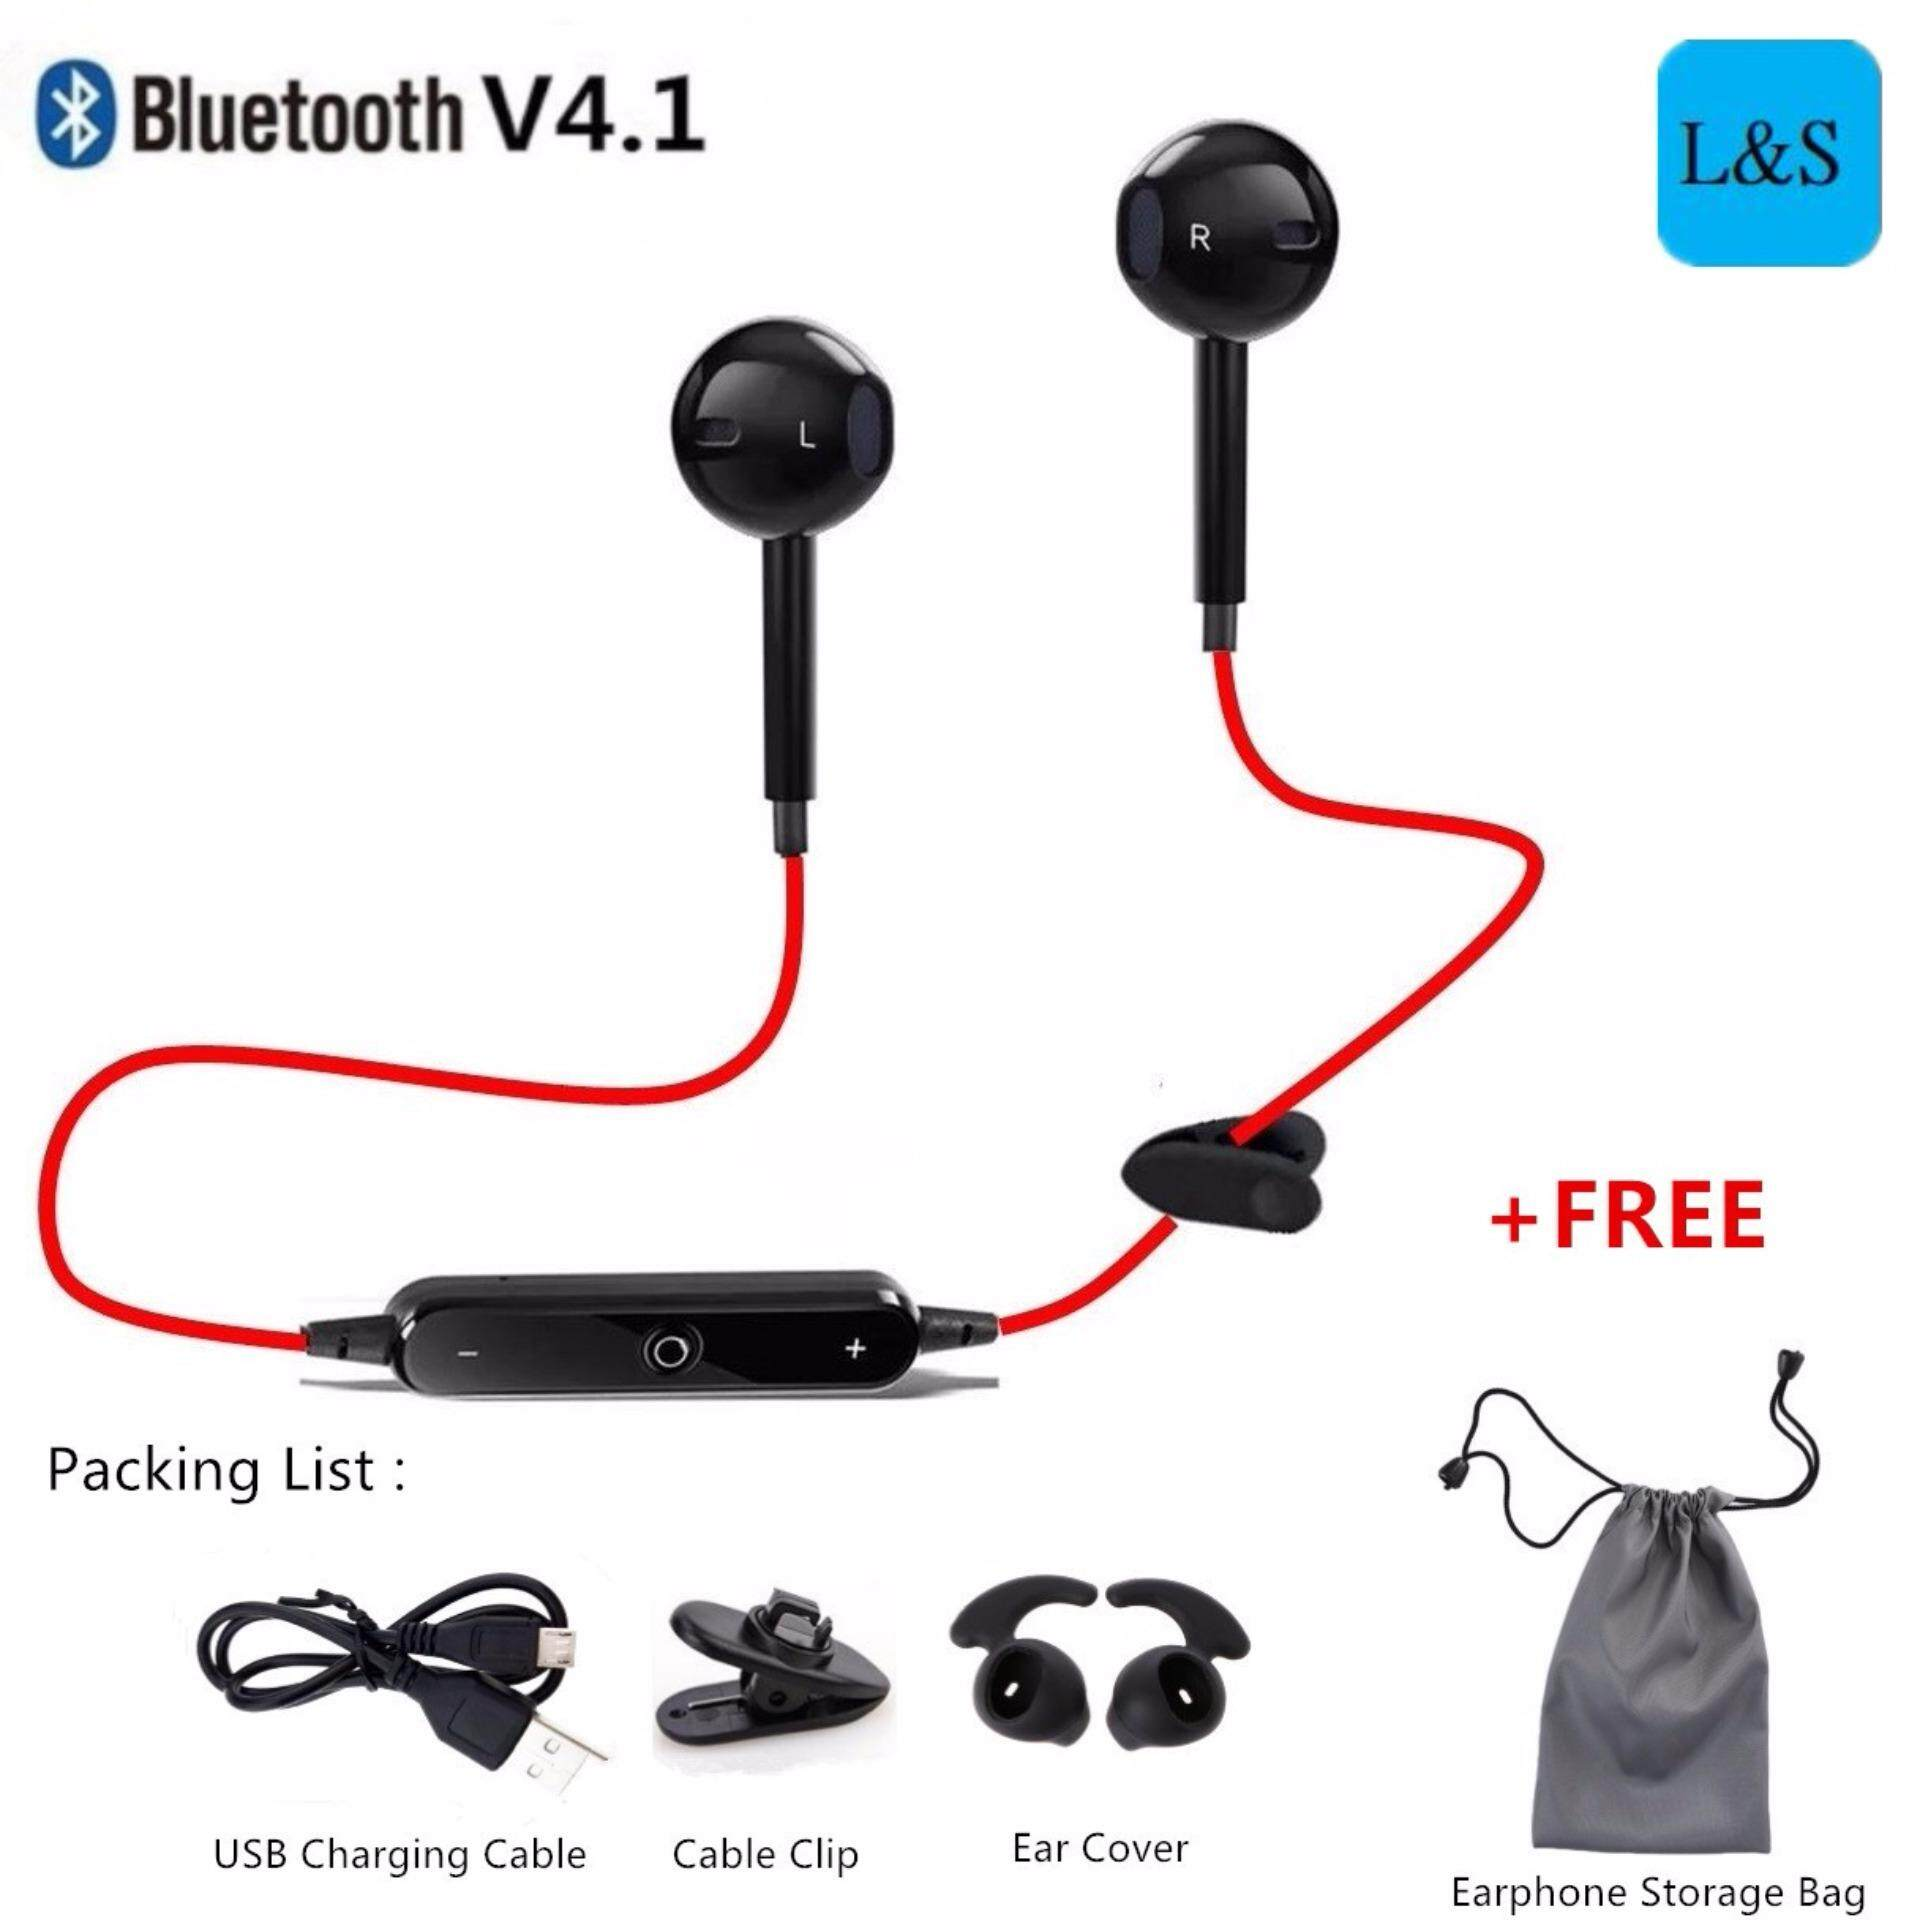 Headphones Headsets Buy At Best Price In Xiaomi Piston 3 Colorful Edition Earphone Original Hitam Wireless Earbuds